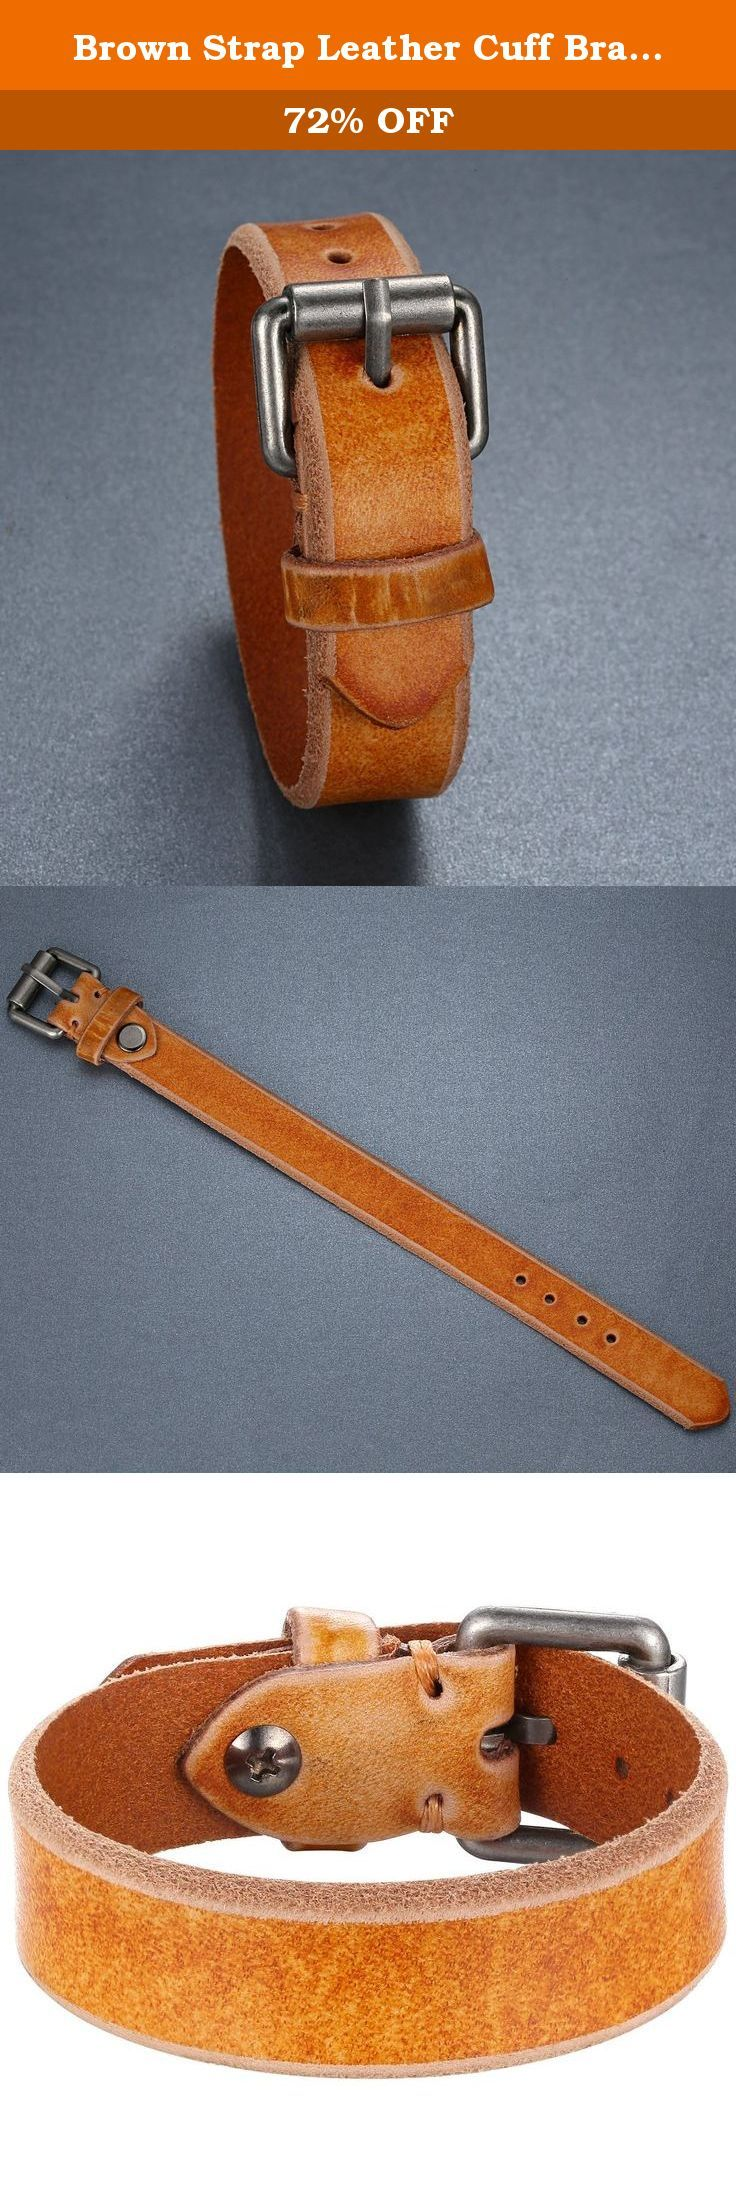 Brown Strap Leather Cuff Bracelet, Ajustable, Belt Style, Unisex, llb020zo. Each leather bracelet will be unique in color. Individual characteristics of leather are exclusive to every single hide. The hideÕs final color may vary in color, tone and darkness. Over time the leather will appear rustic as the hide embraces a patina that is unique to the wearer. Daily activities including sun exposure, handling, water will aid this natural process.